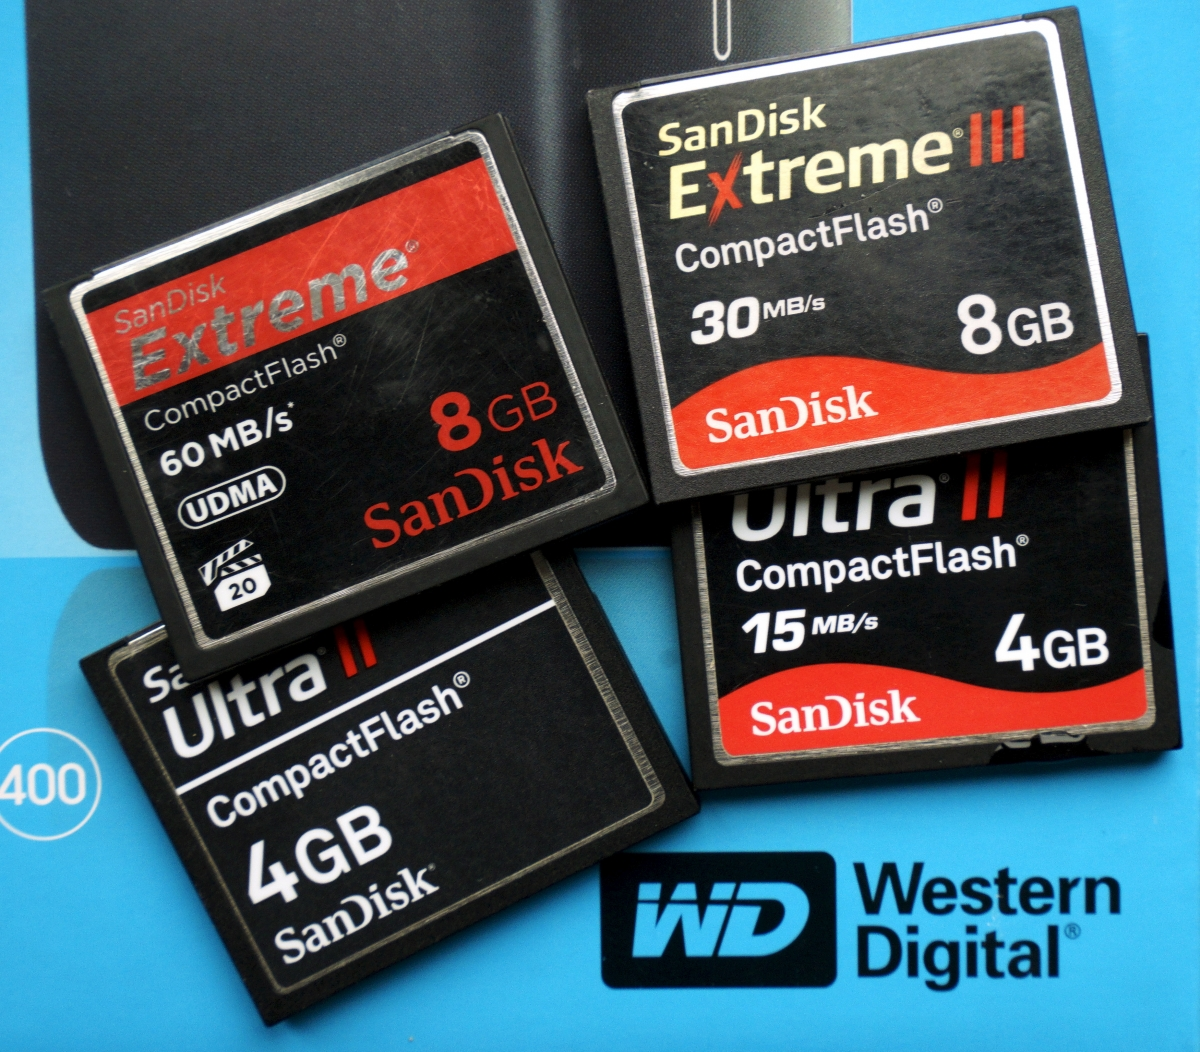 Western Digital announces acquisition of SanDisk for about $19bn